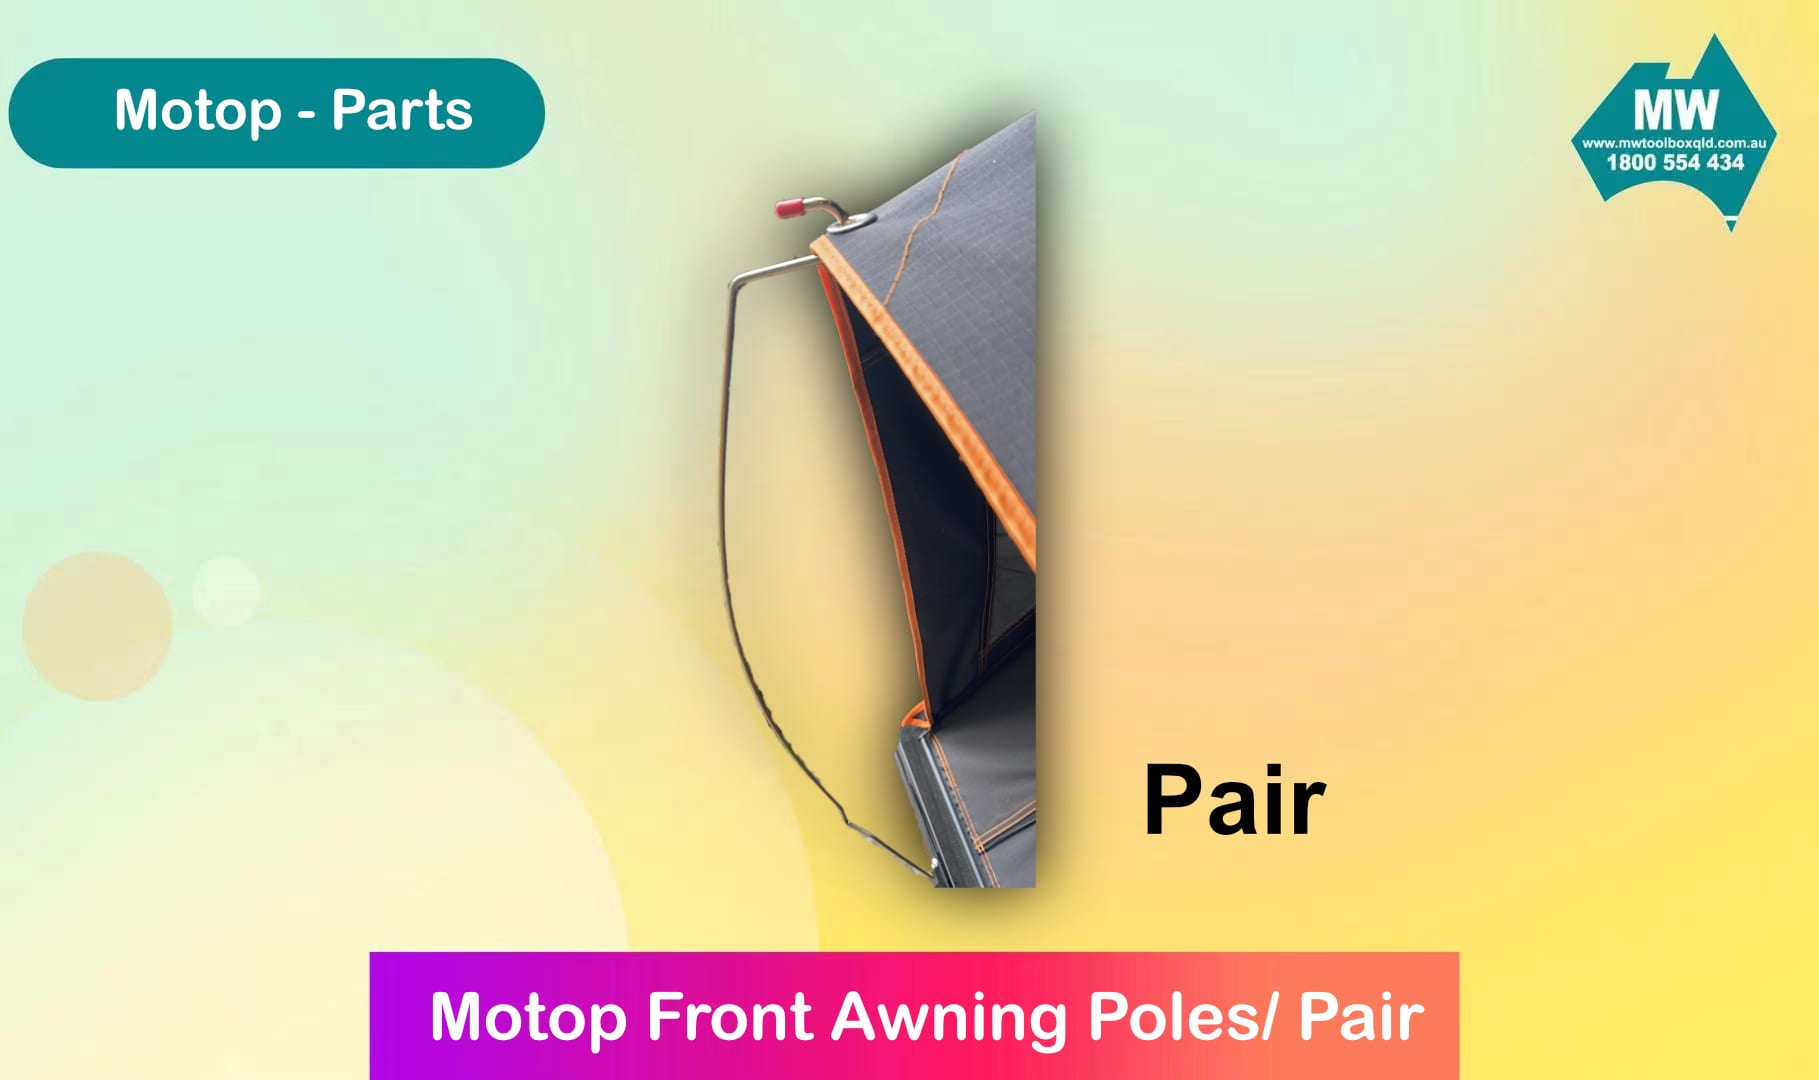 Front Awning Poles